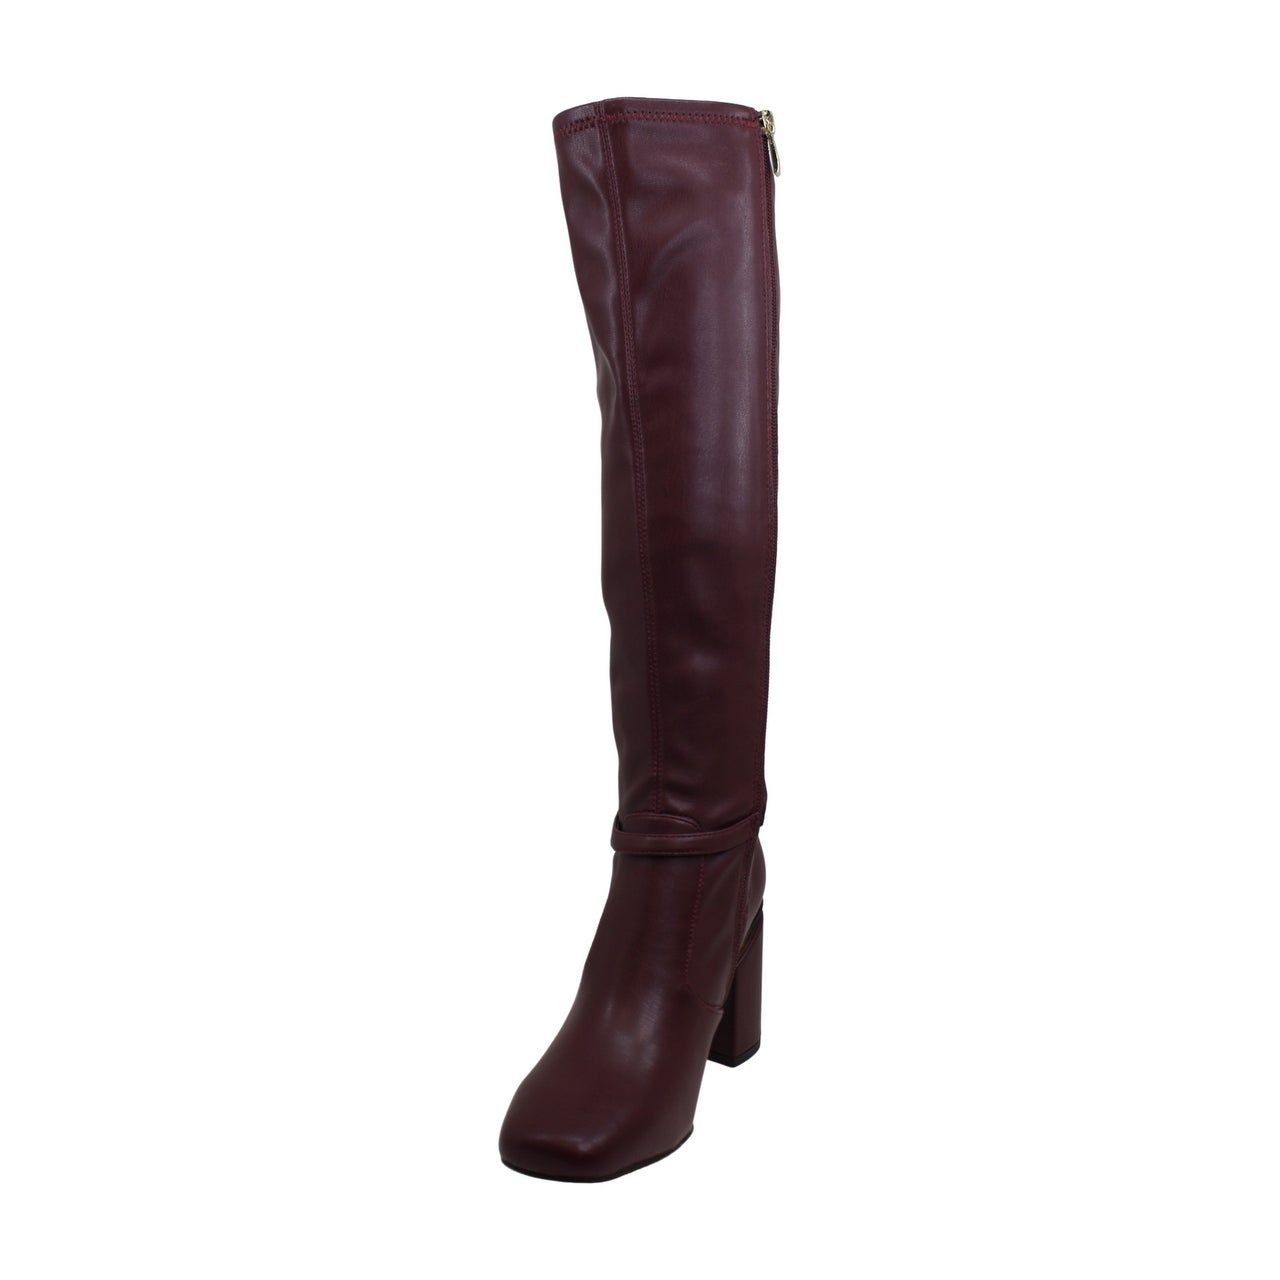 Franco Sarto Women/'s Shoes Roxanne Leather Square Toe Knee High Fashion Boots